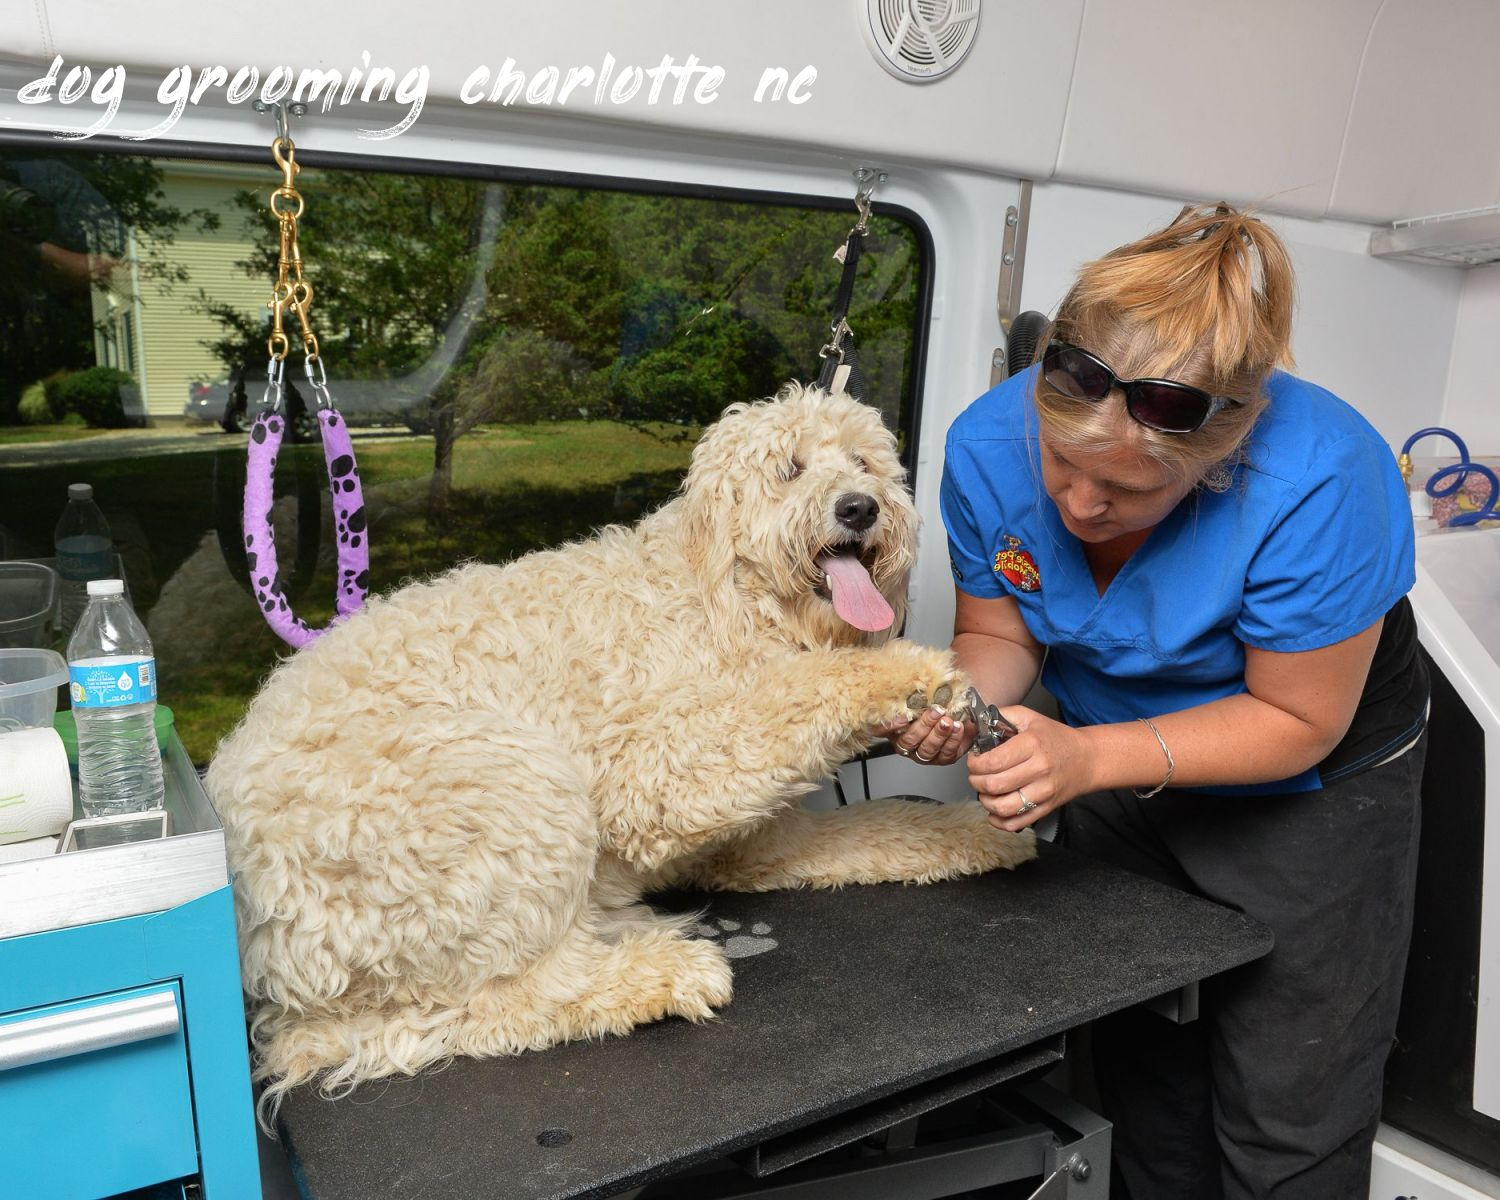 dog grooming charlotte nc Recommended